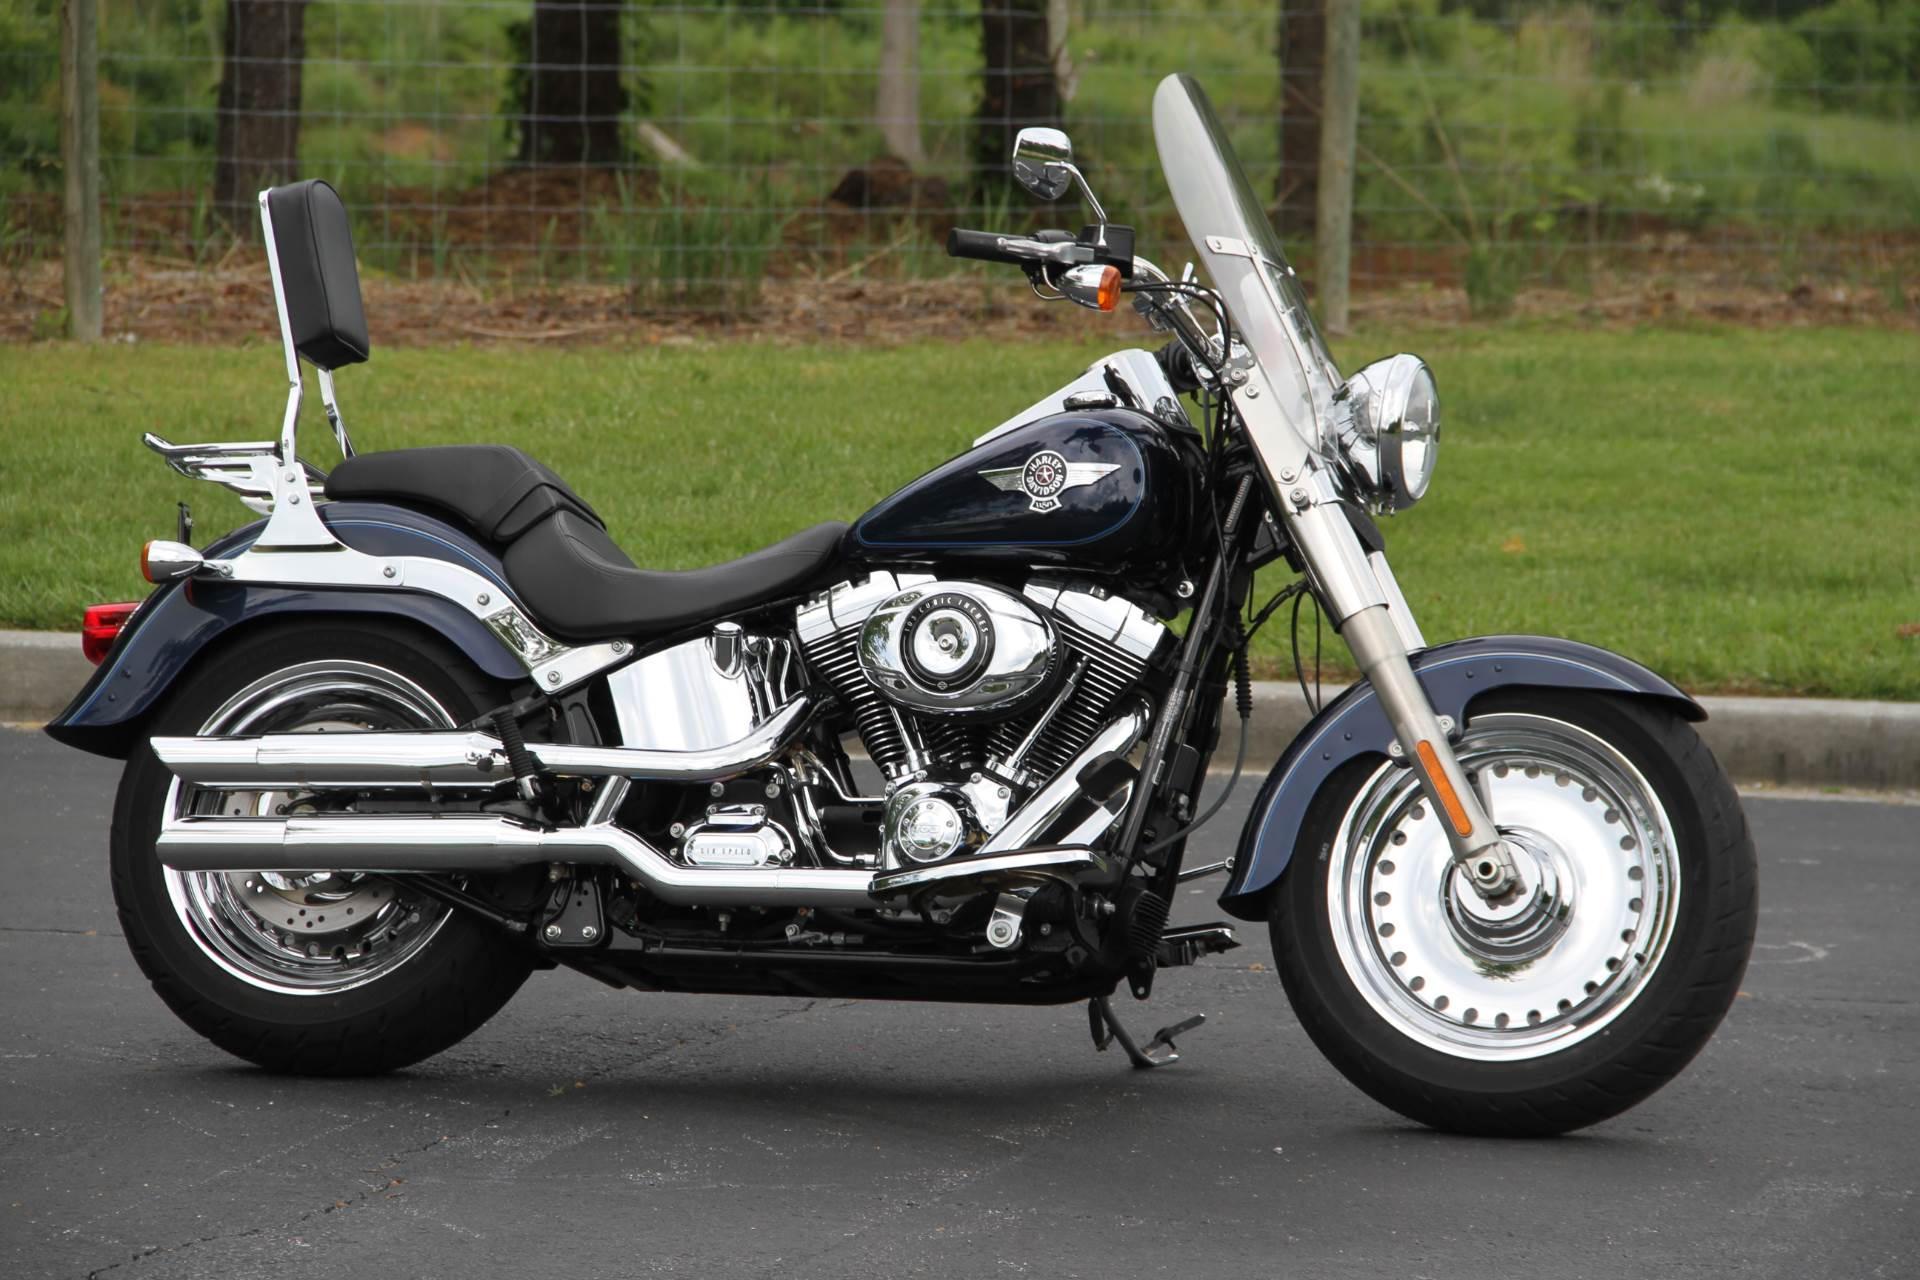 used 2013 harley davidson softail fat boy motorcycles in. Black Bedroom Furniture Sets. Home Design Ideas